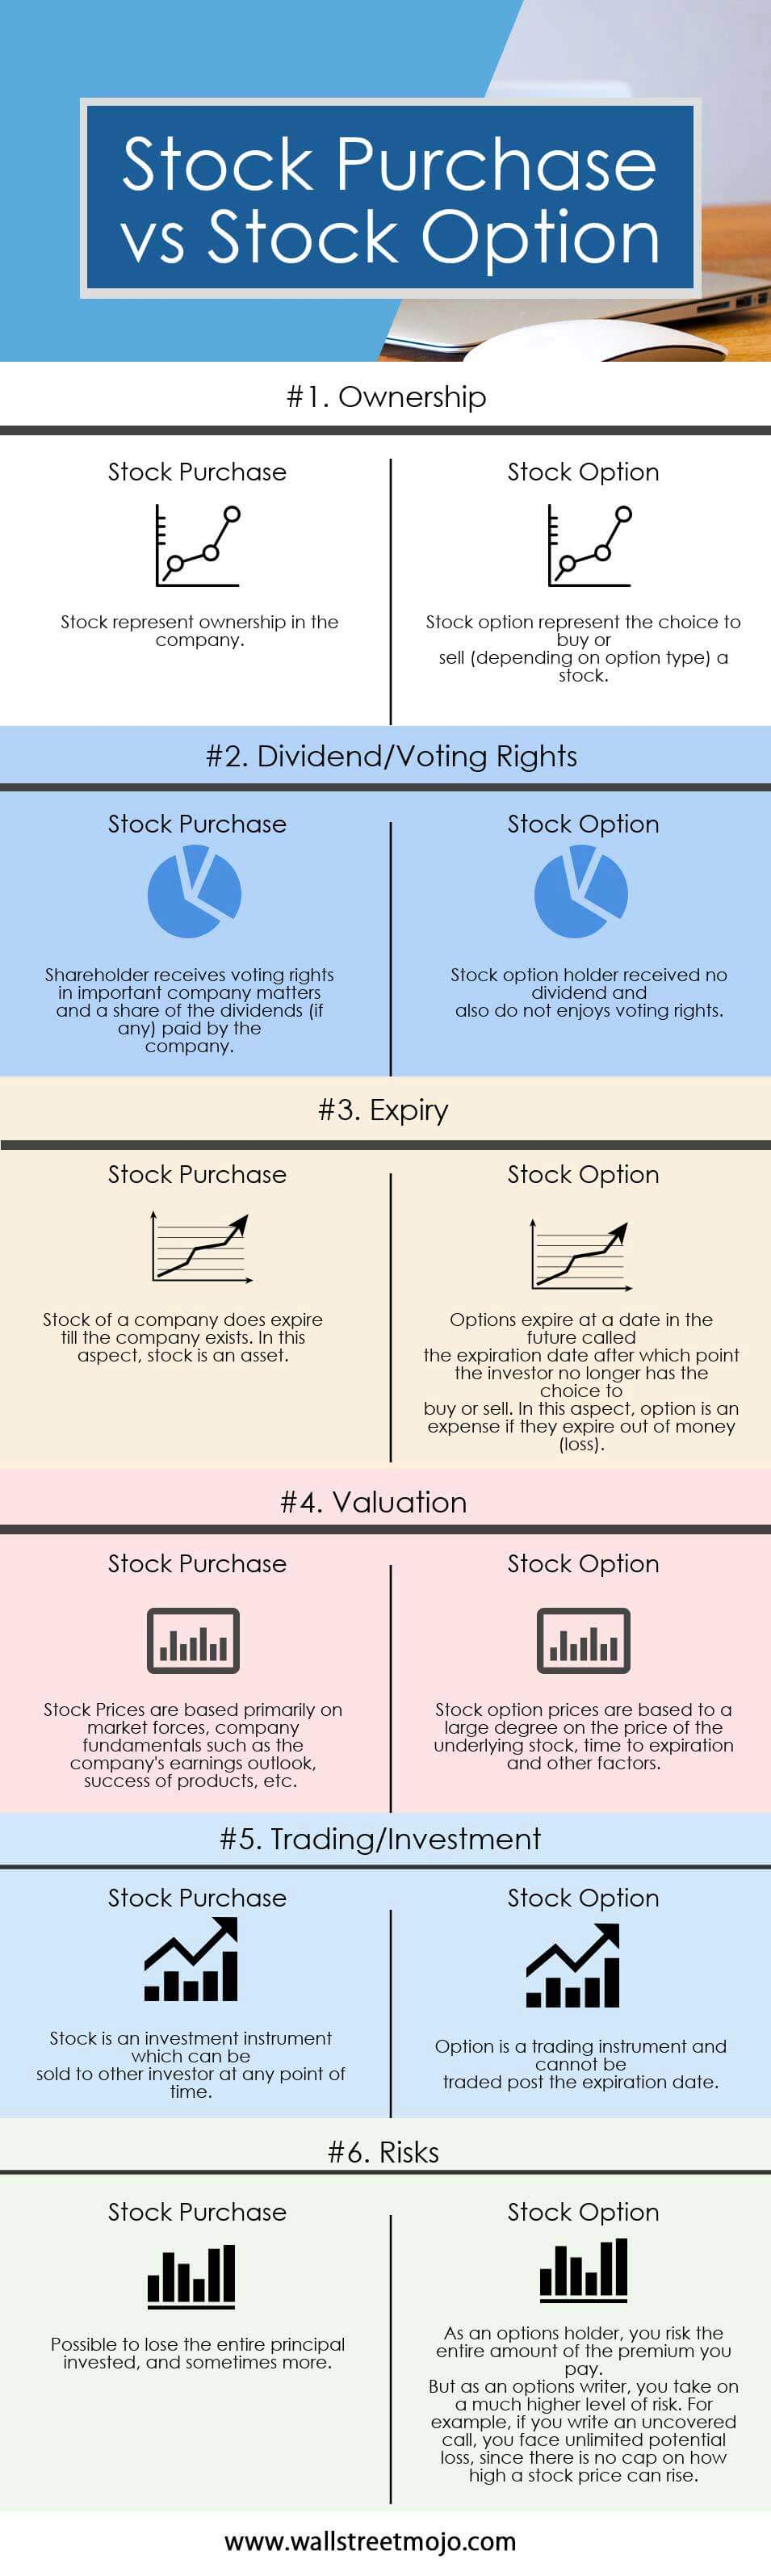 Stock Purchase vs Stock Options